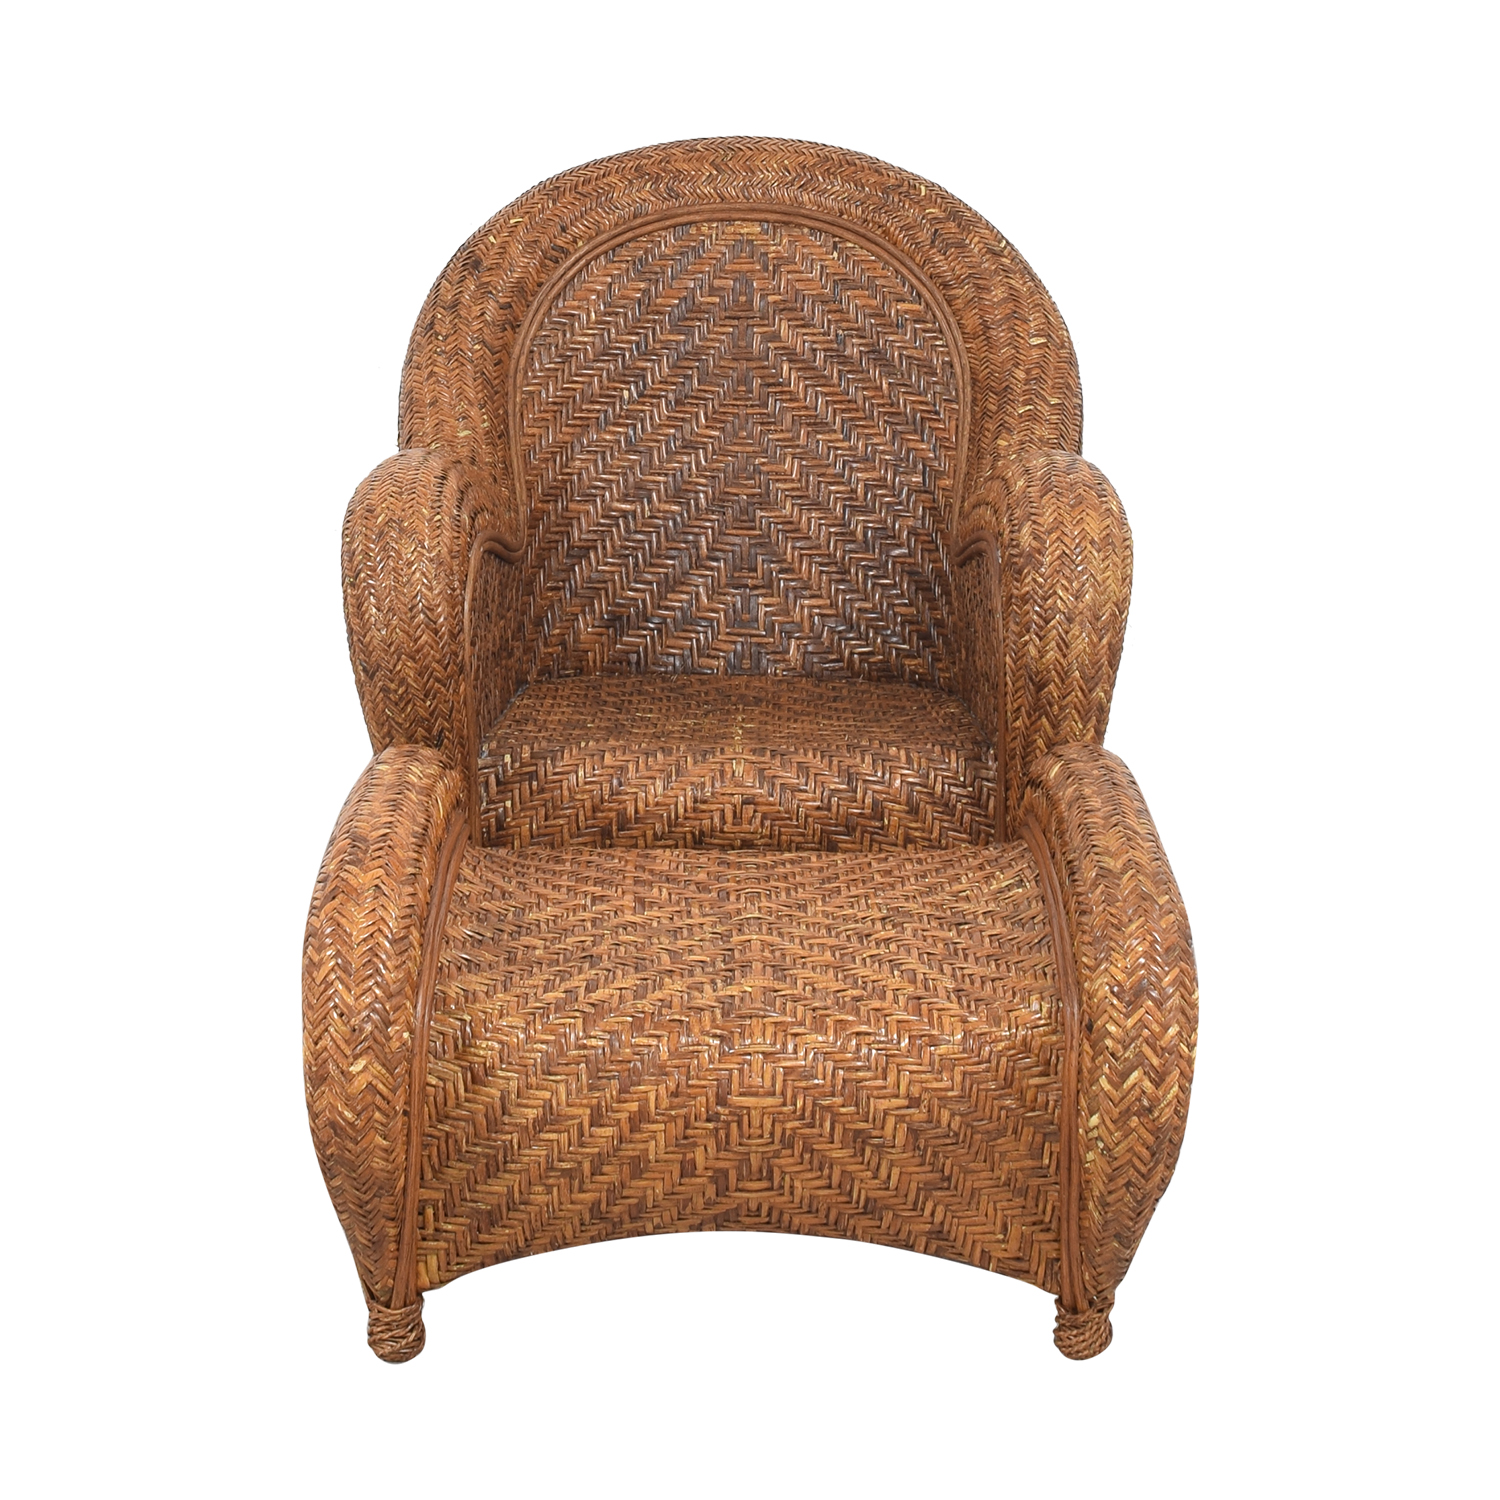 Pottery Barn Seagrass Wicker Armchair and Ottoman Accent Chairs